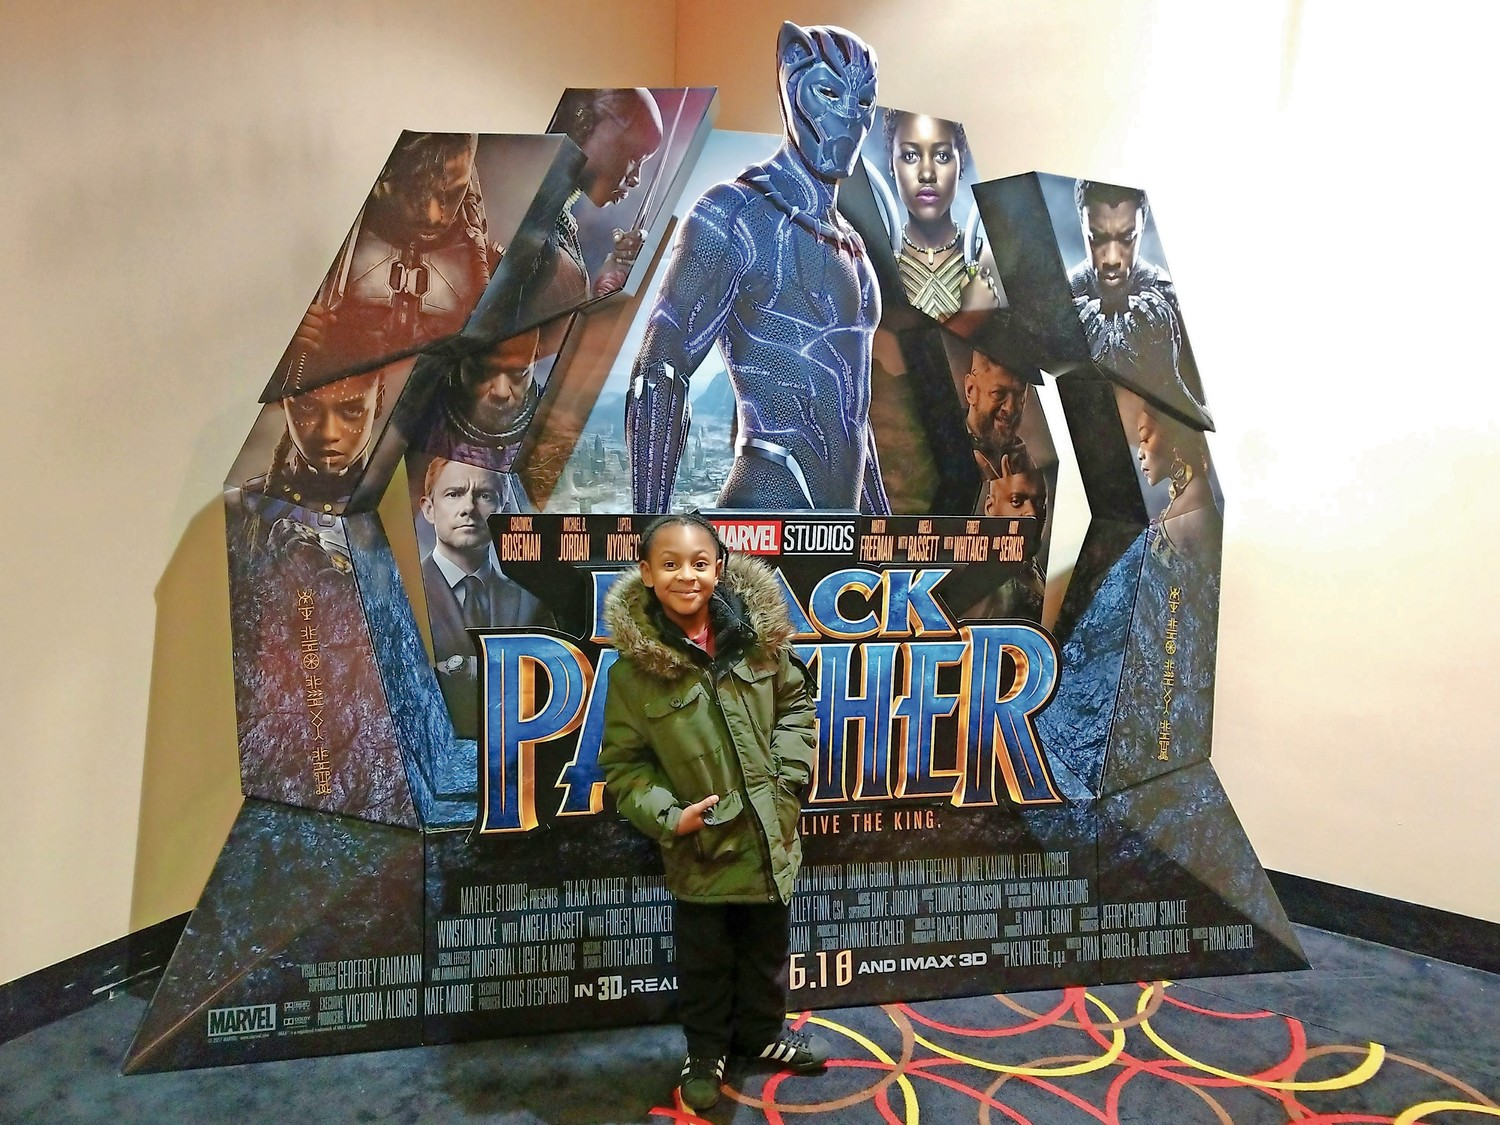 Long Beach resident Mason Streeter, 7, was excited to see the film at Roosevelt Field last week.